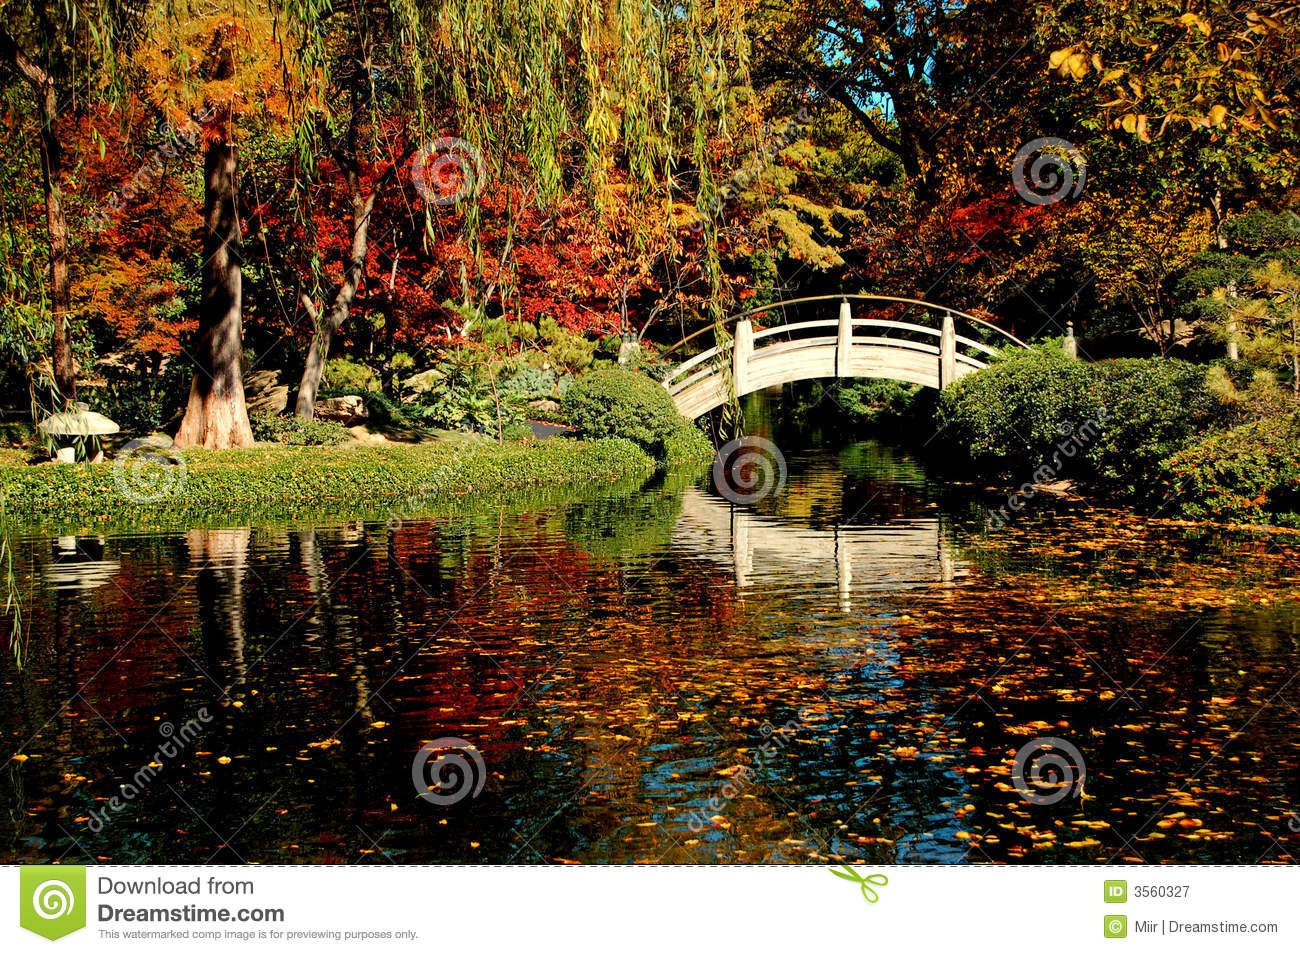 Fall garden foliage and color royalty free stock photography image 3560327 - Gardening in fall ...